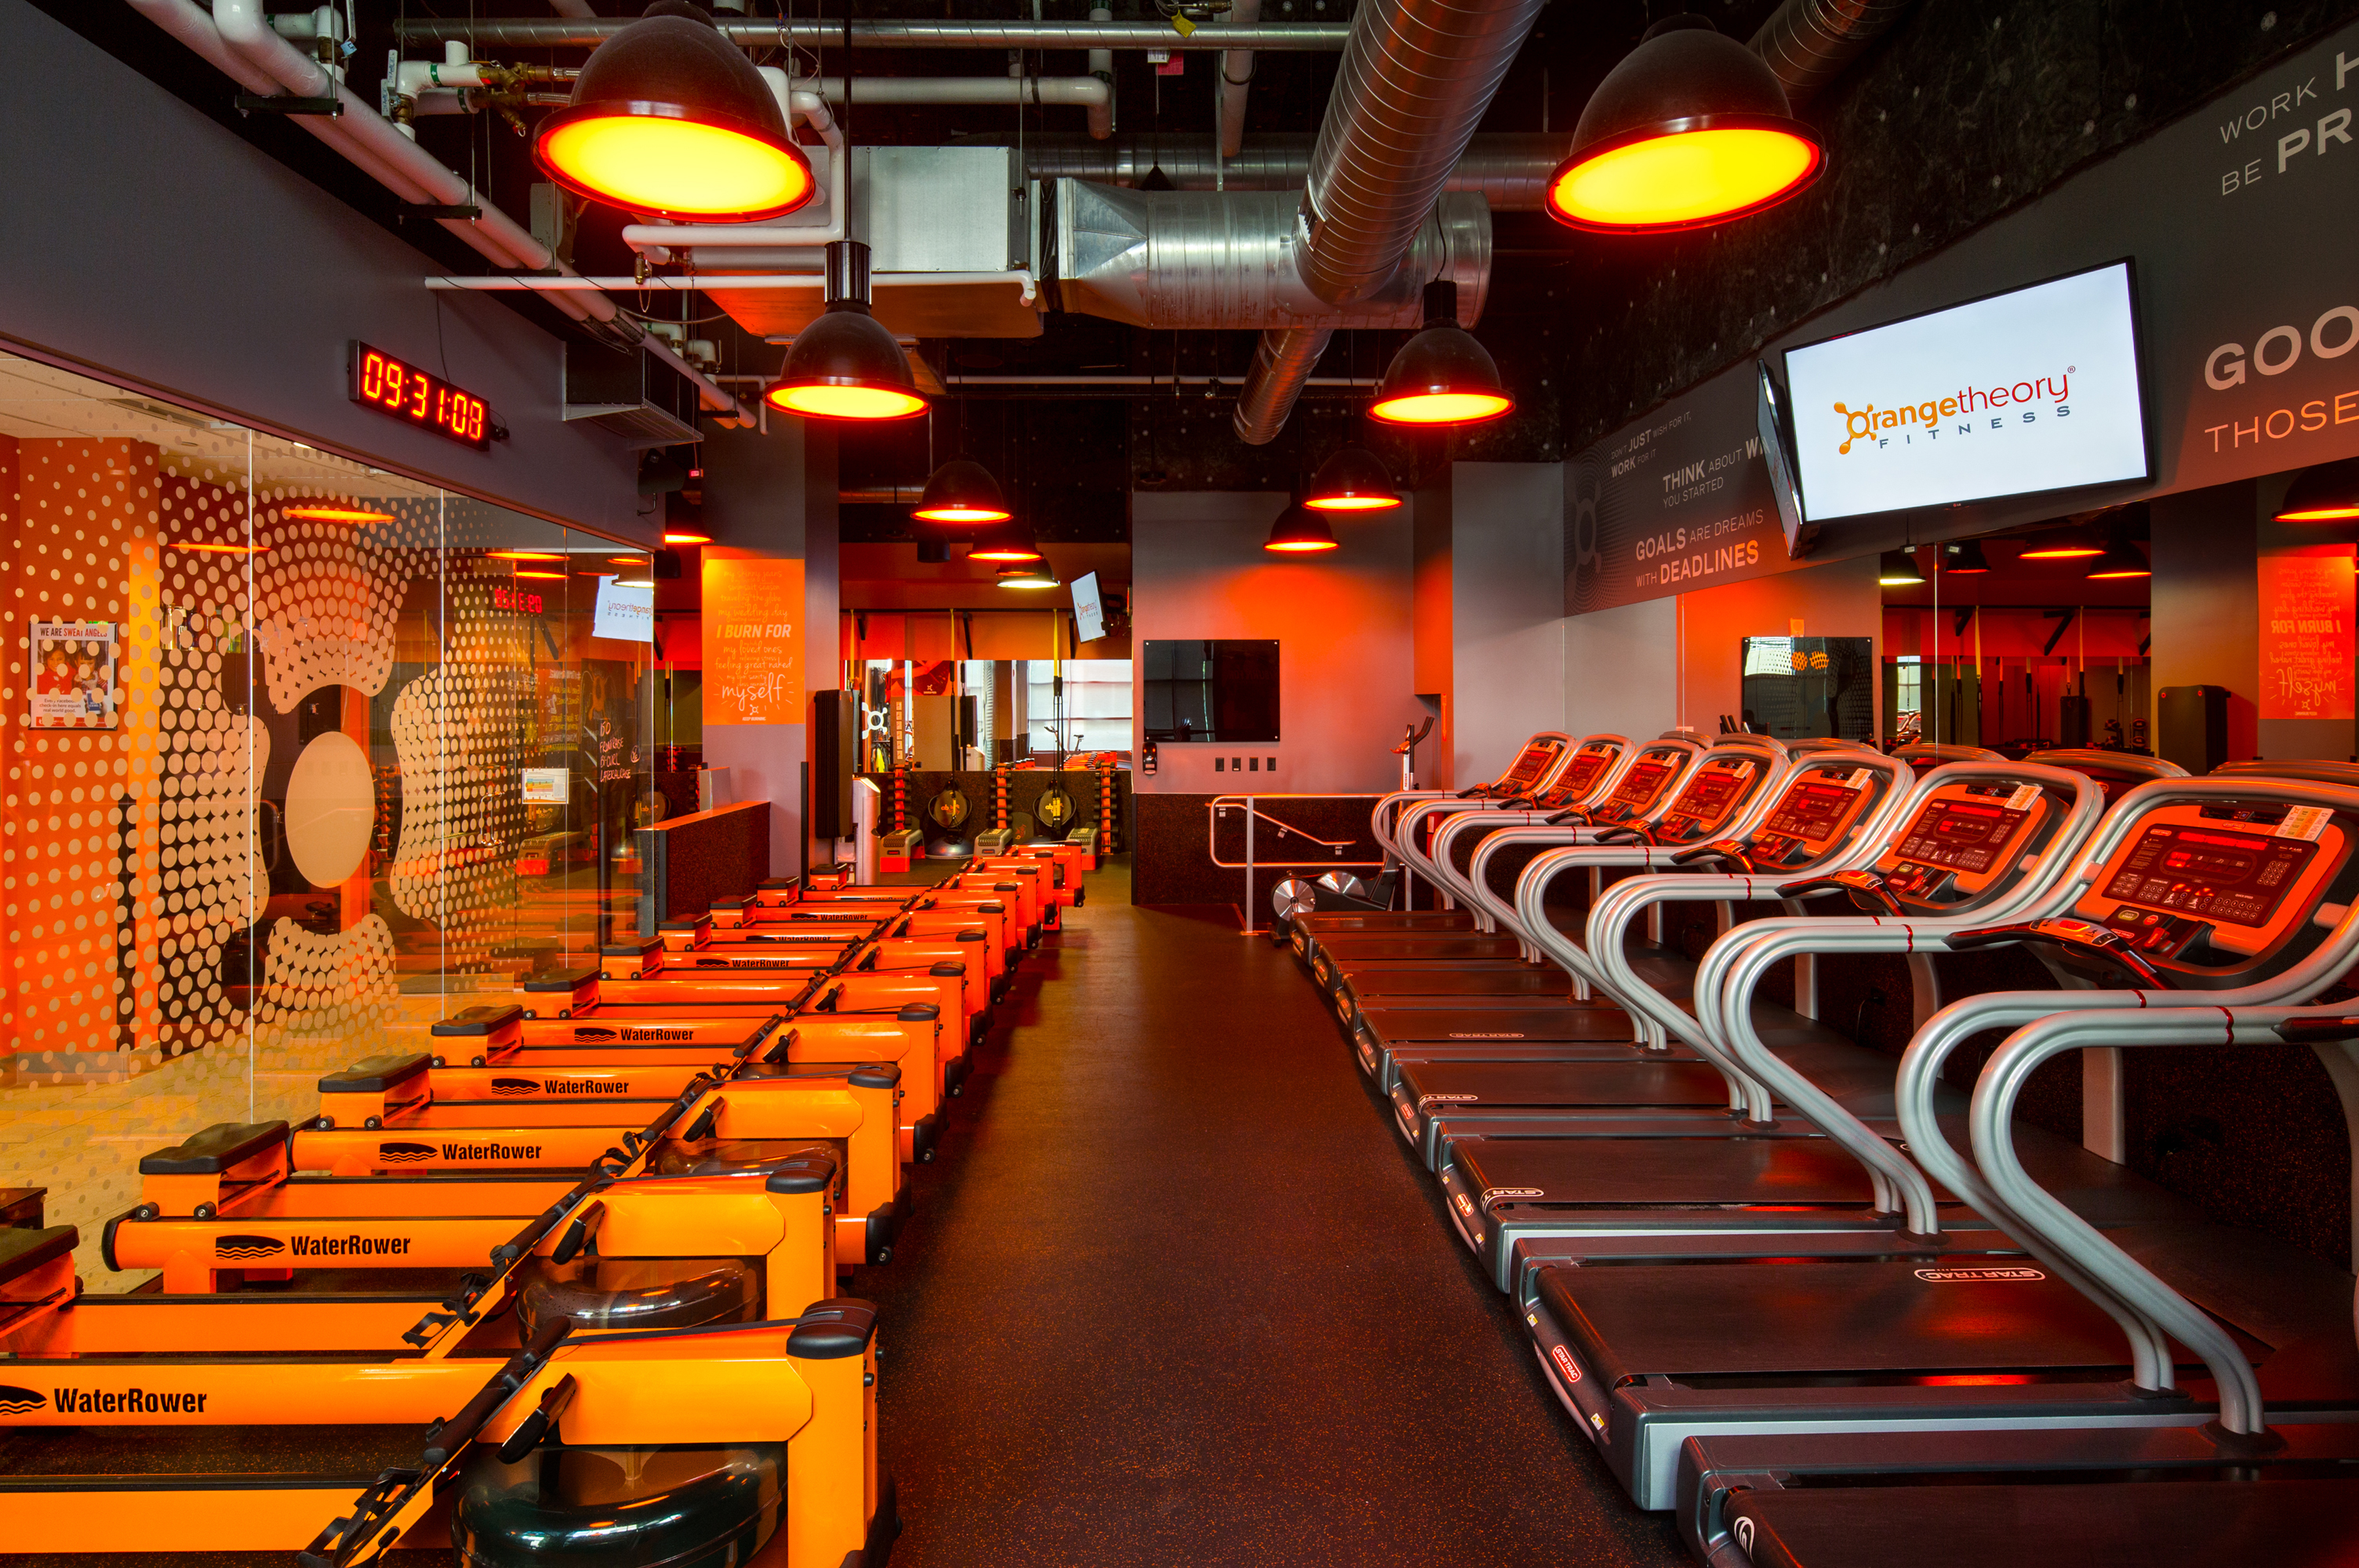 Fitness Center Buildout, Denver Colorado- Jordy Construction Orange Theory 2